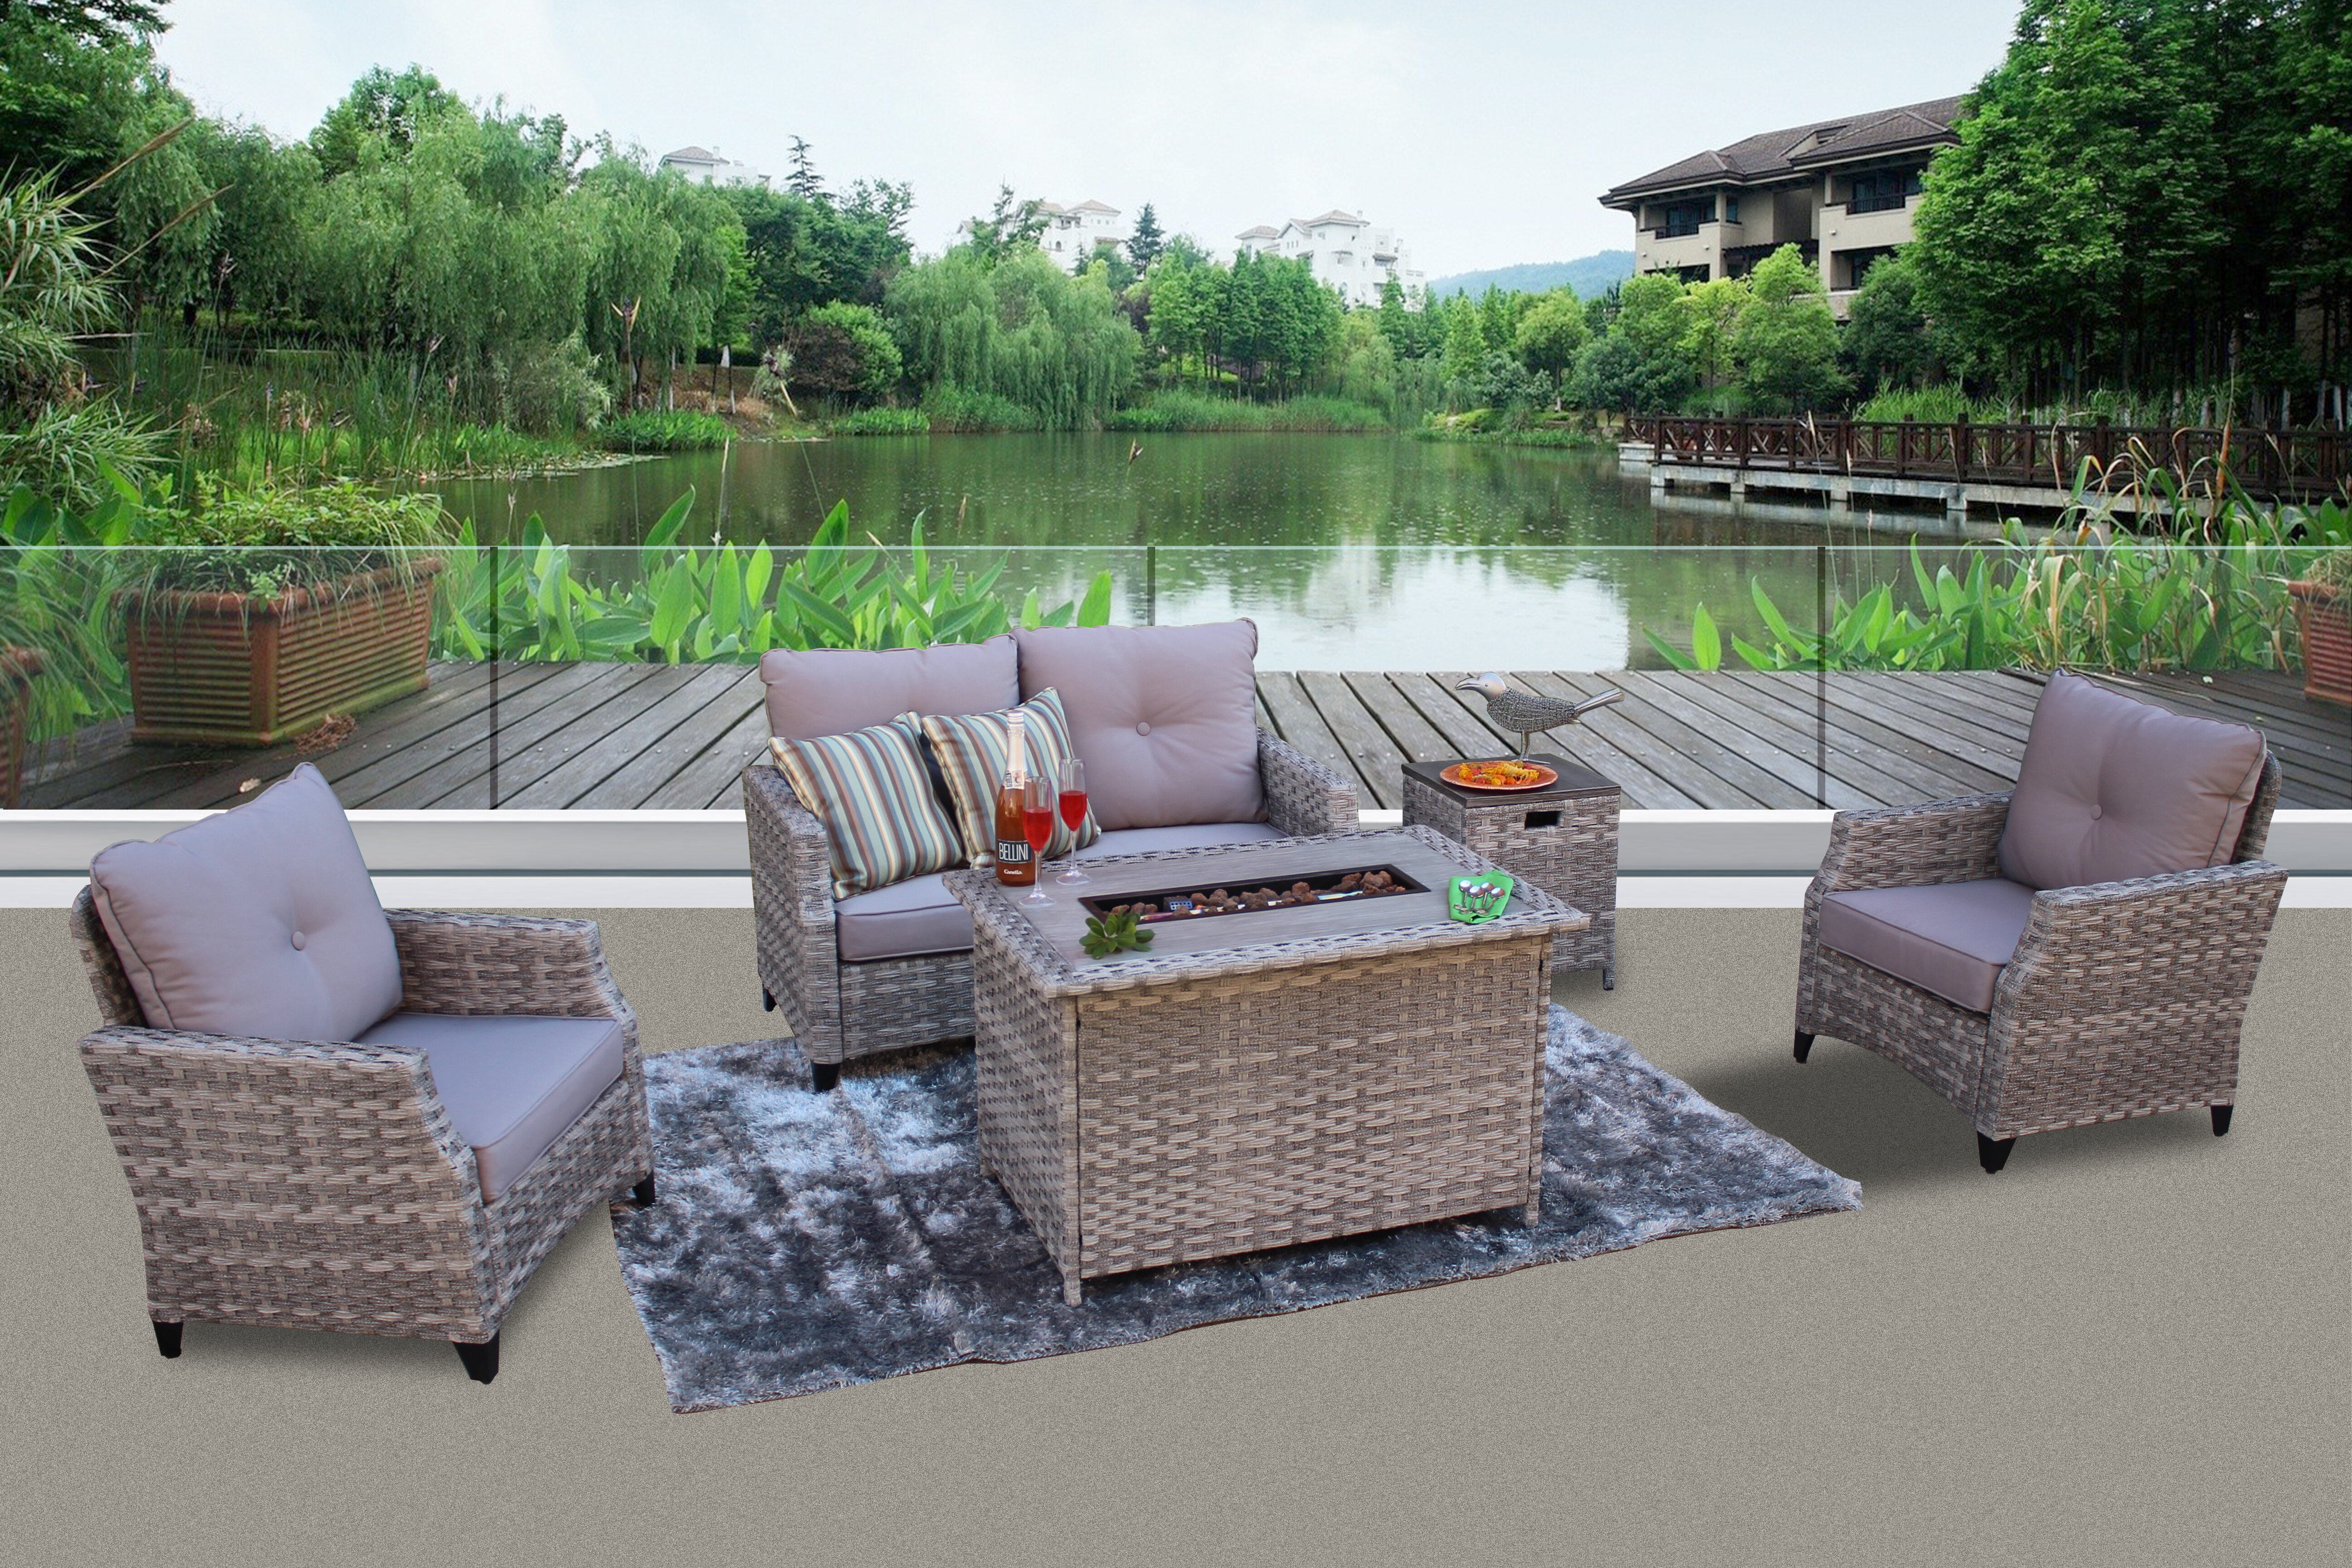 Darby Home Co Chu 5 Piece Rattan Sofa Seating Group with Cushions